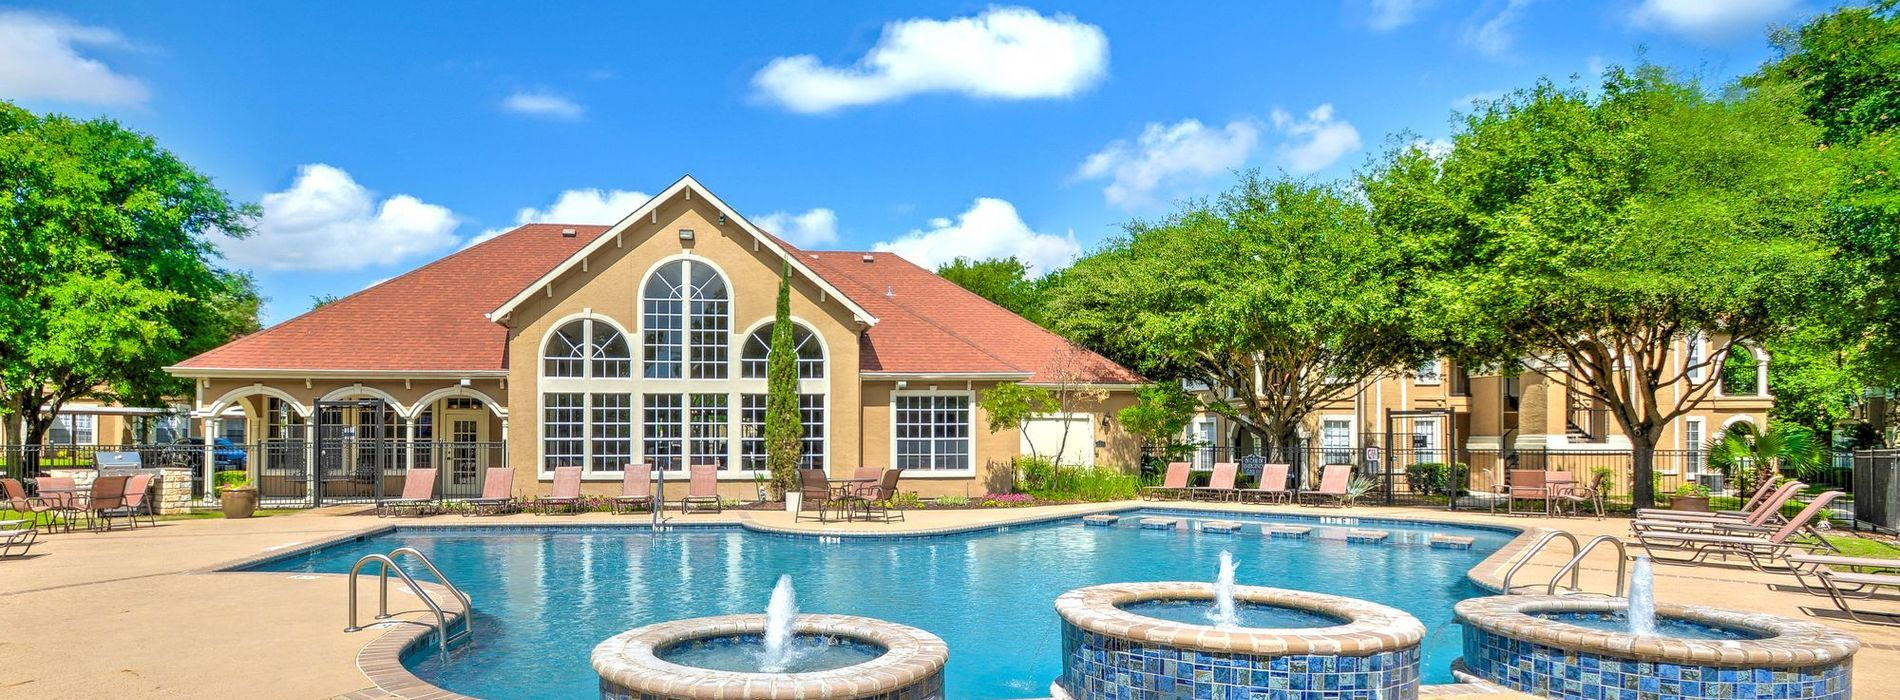 Apartments For Rent In San Marcos Tx The Palazzo Apts Texas